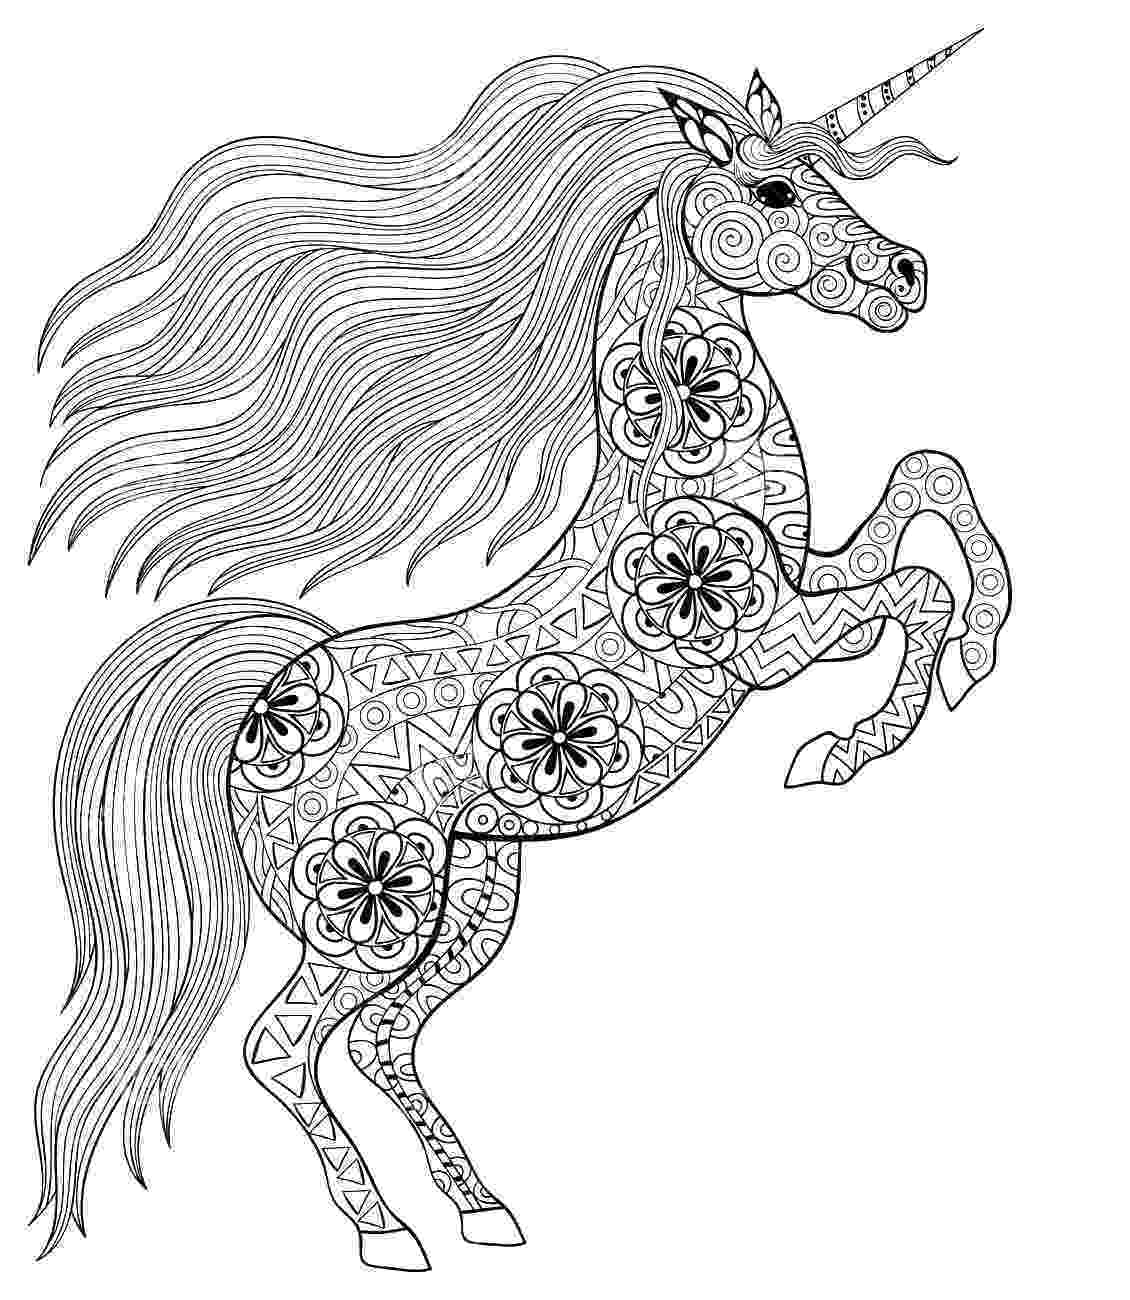 free printable coloring pages for children free printable coloring pages for children printable coloring children pages free for